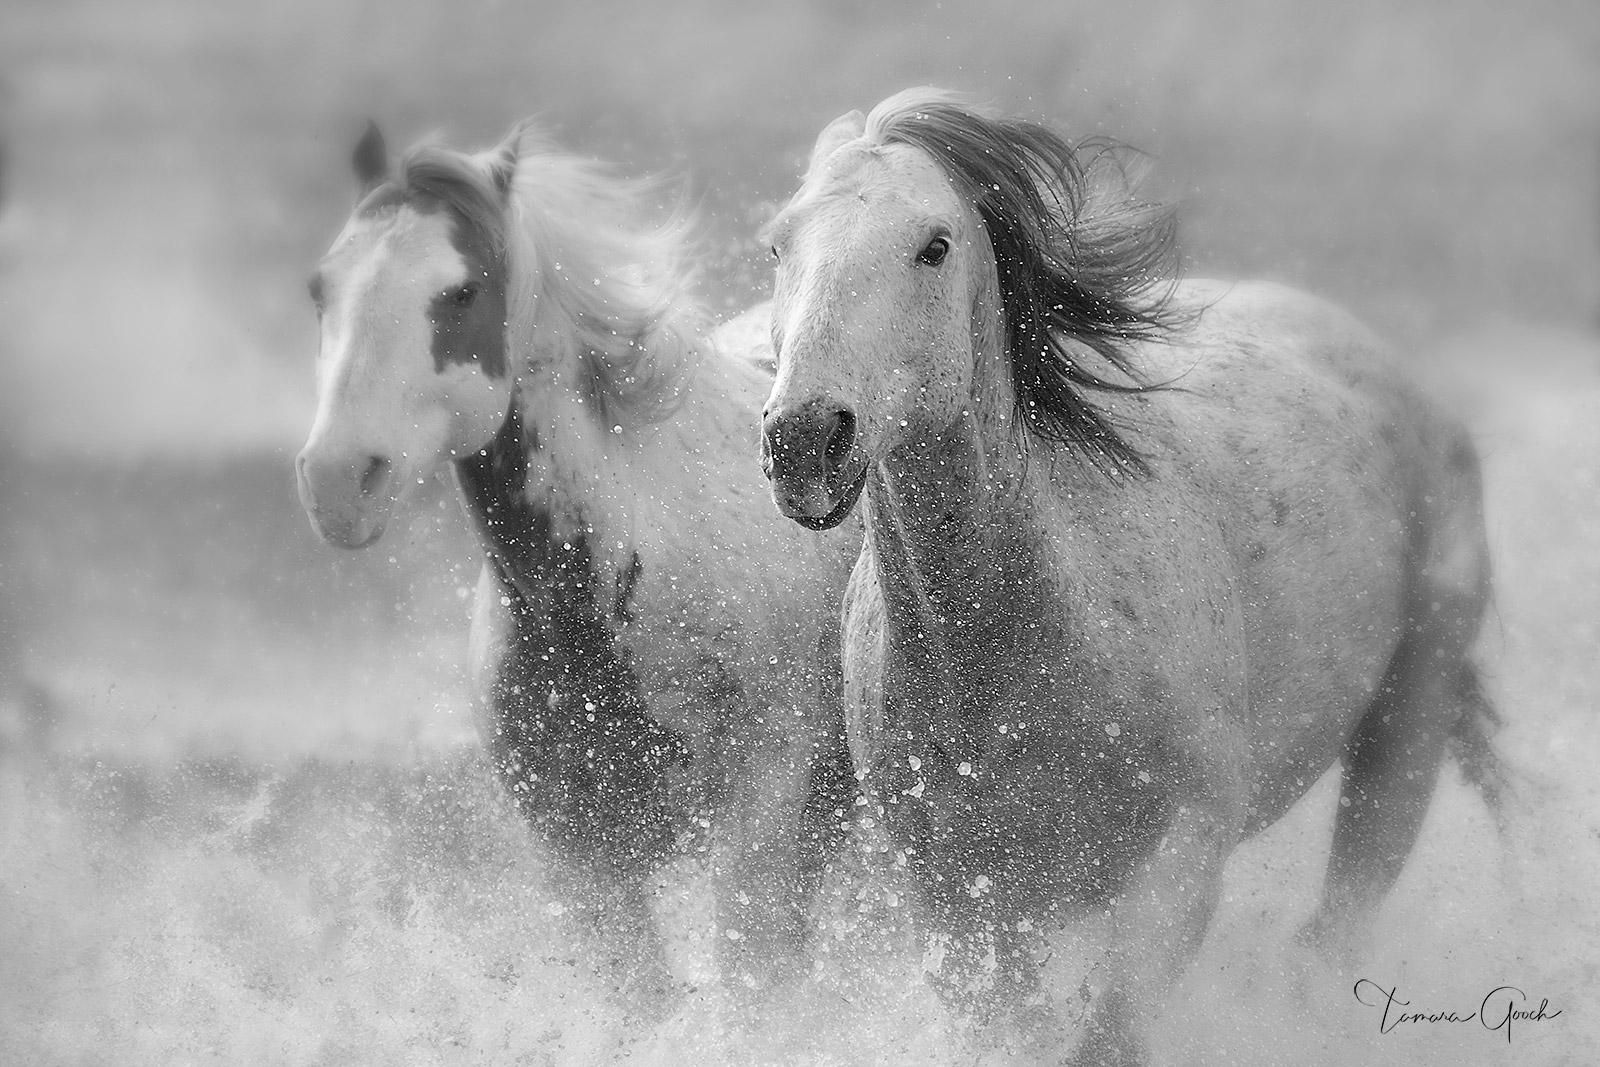 black and white photography, black and white horse photos, ranch horses, quarter horses, water, horses running through water...